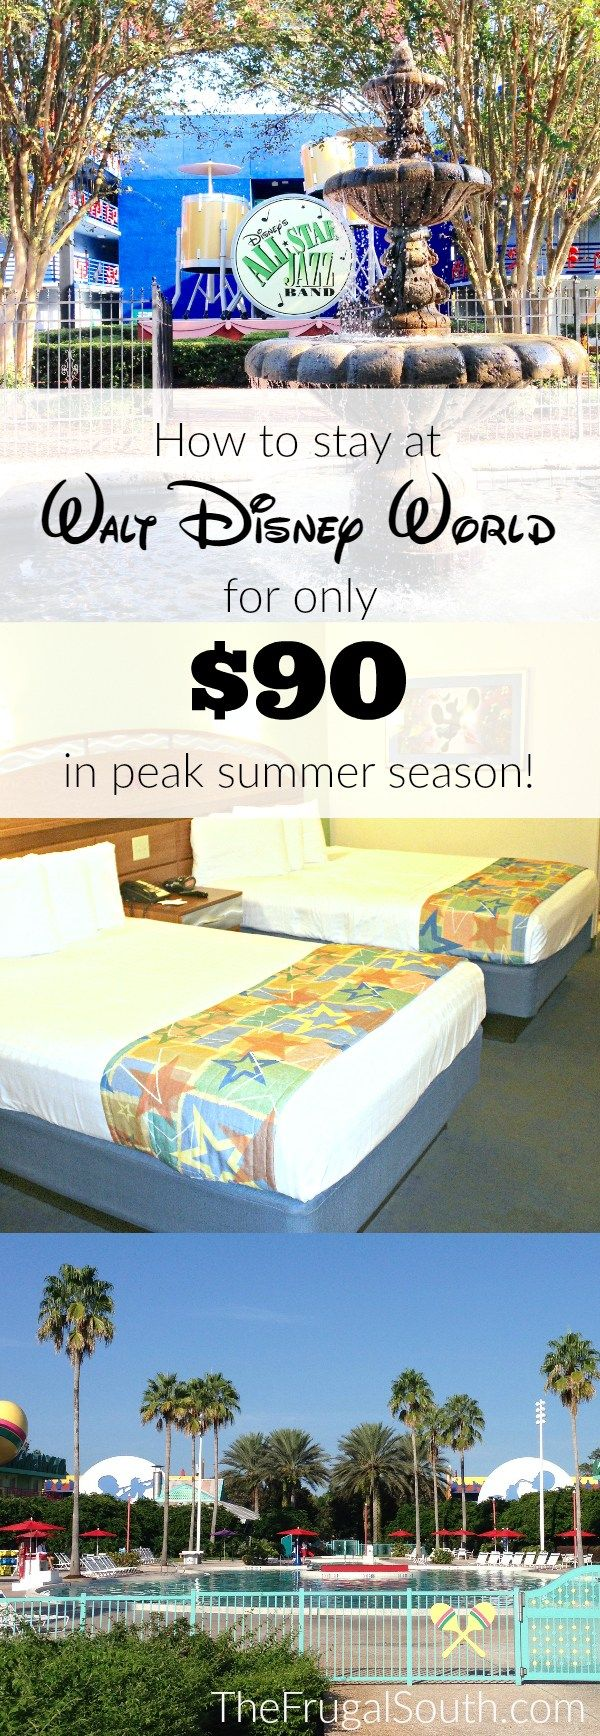 How to stay at a on-property Disney World hotel for only $90 per night, even in peak summer season! Tips and tricks for getting discounted Disney World hotel rooms that include all of the perks of staying on-site!